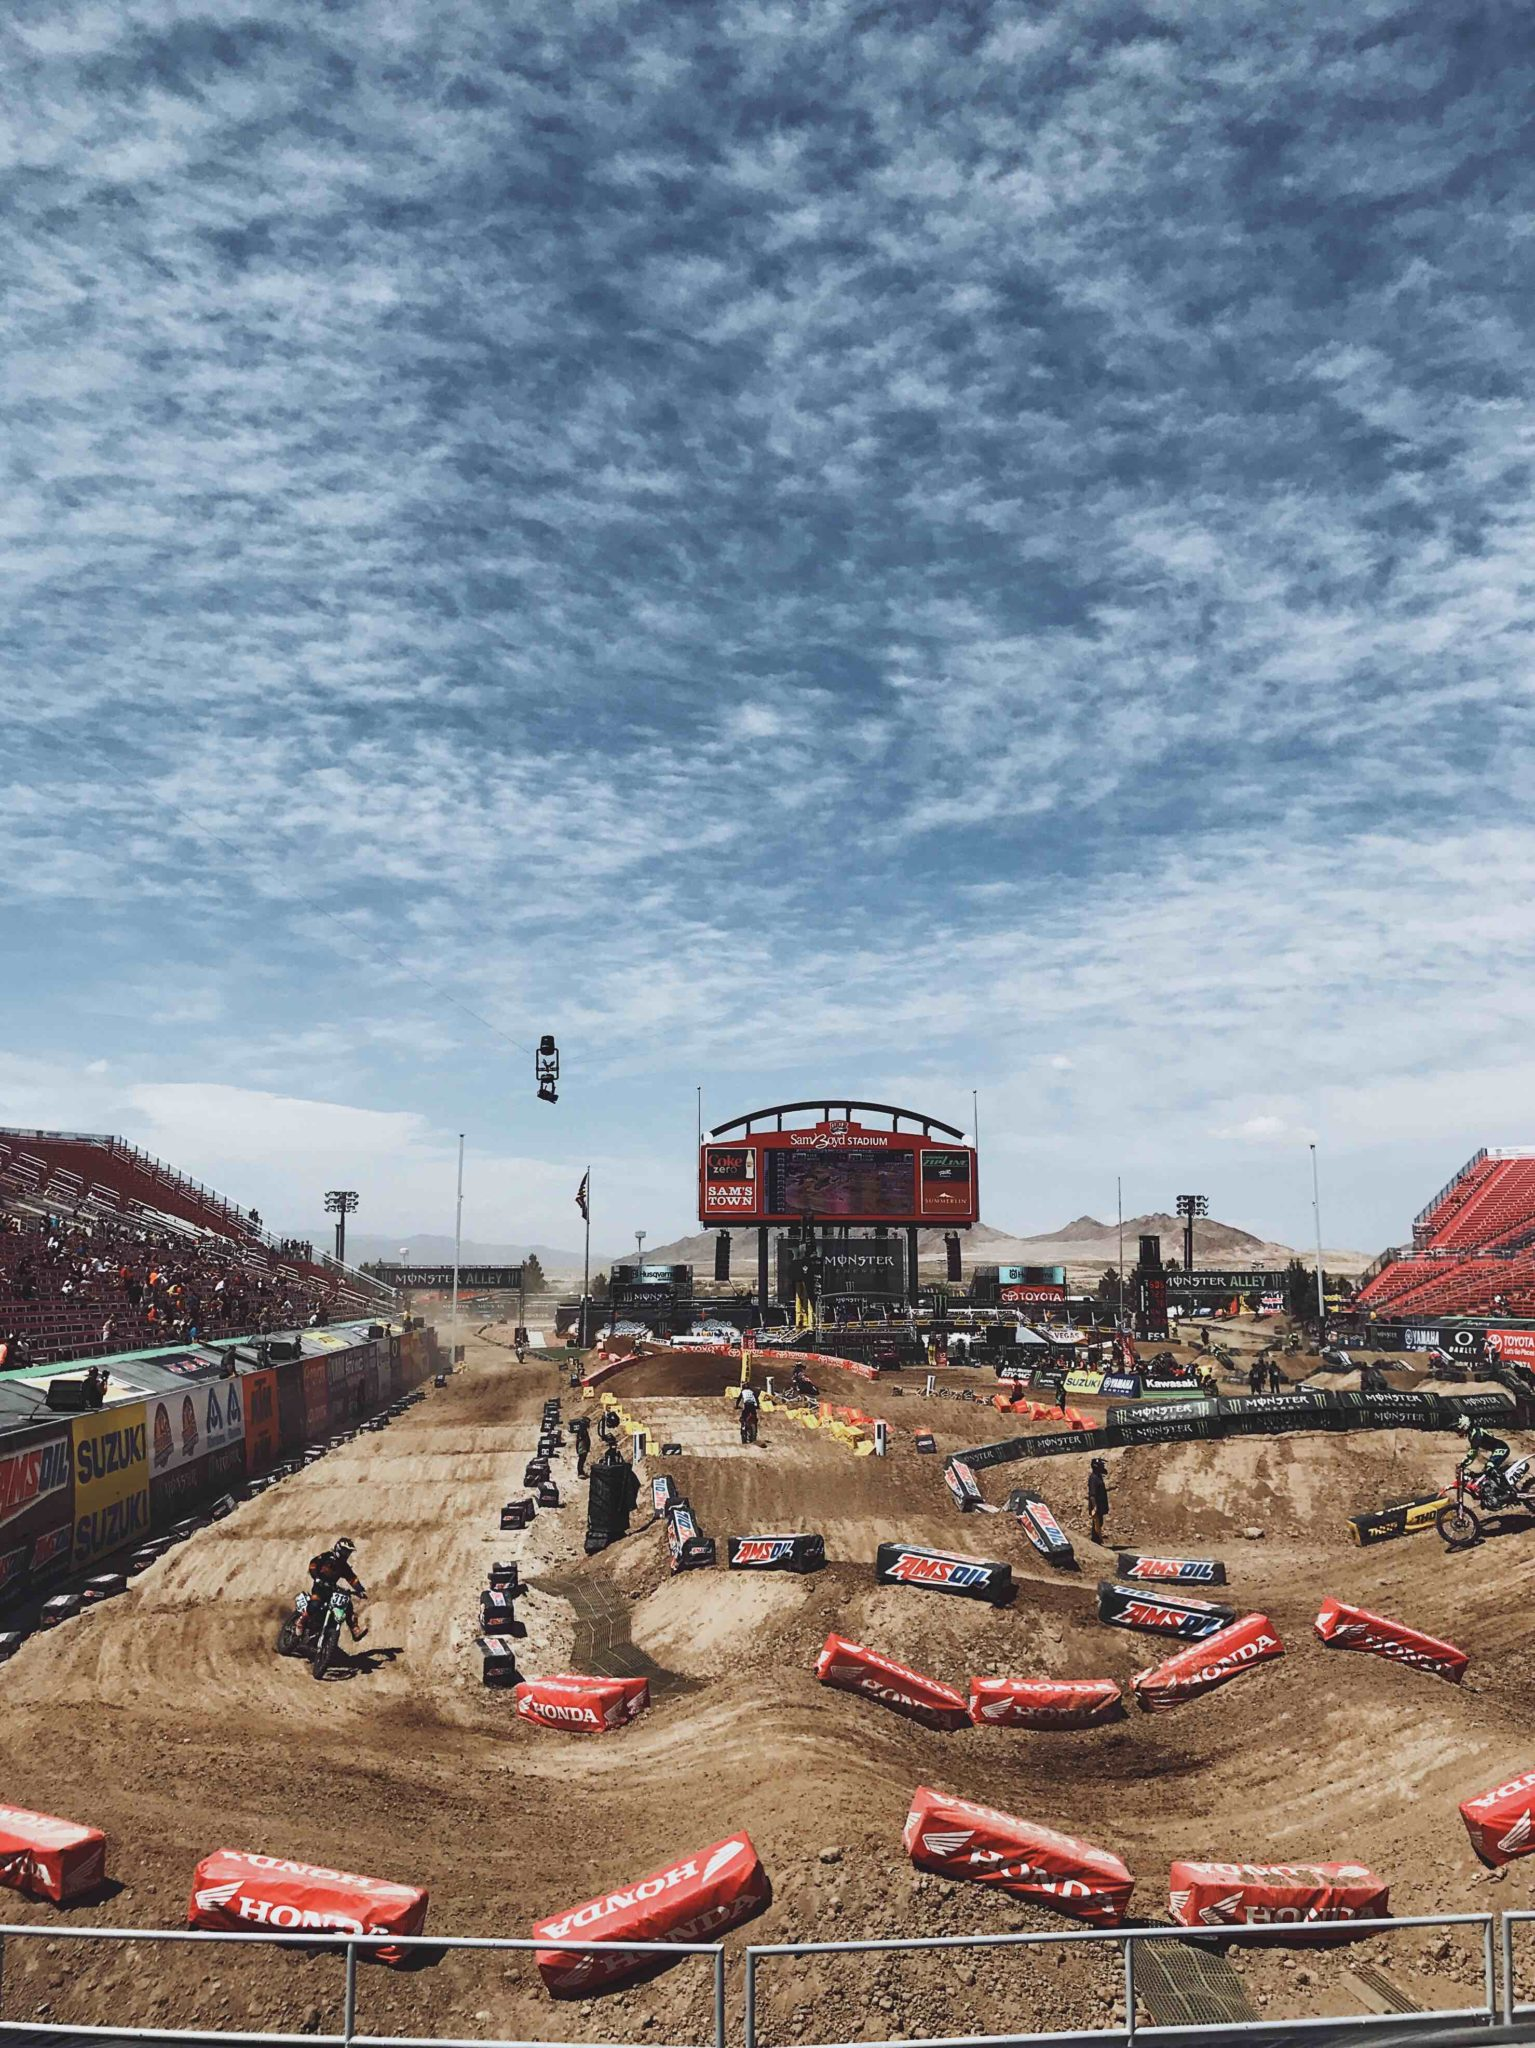 DTKAustin shares her experience at the last 2017 Supercross race of the season in Las Vegas.